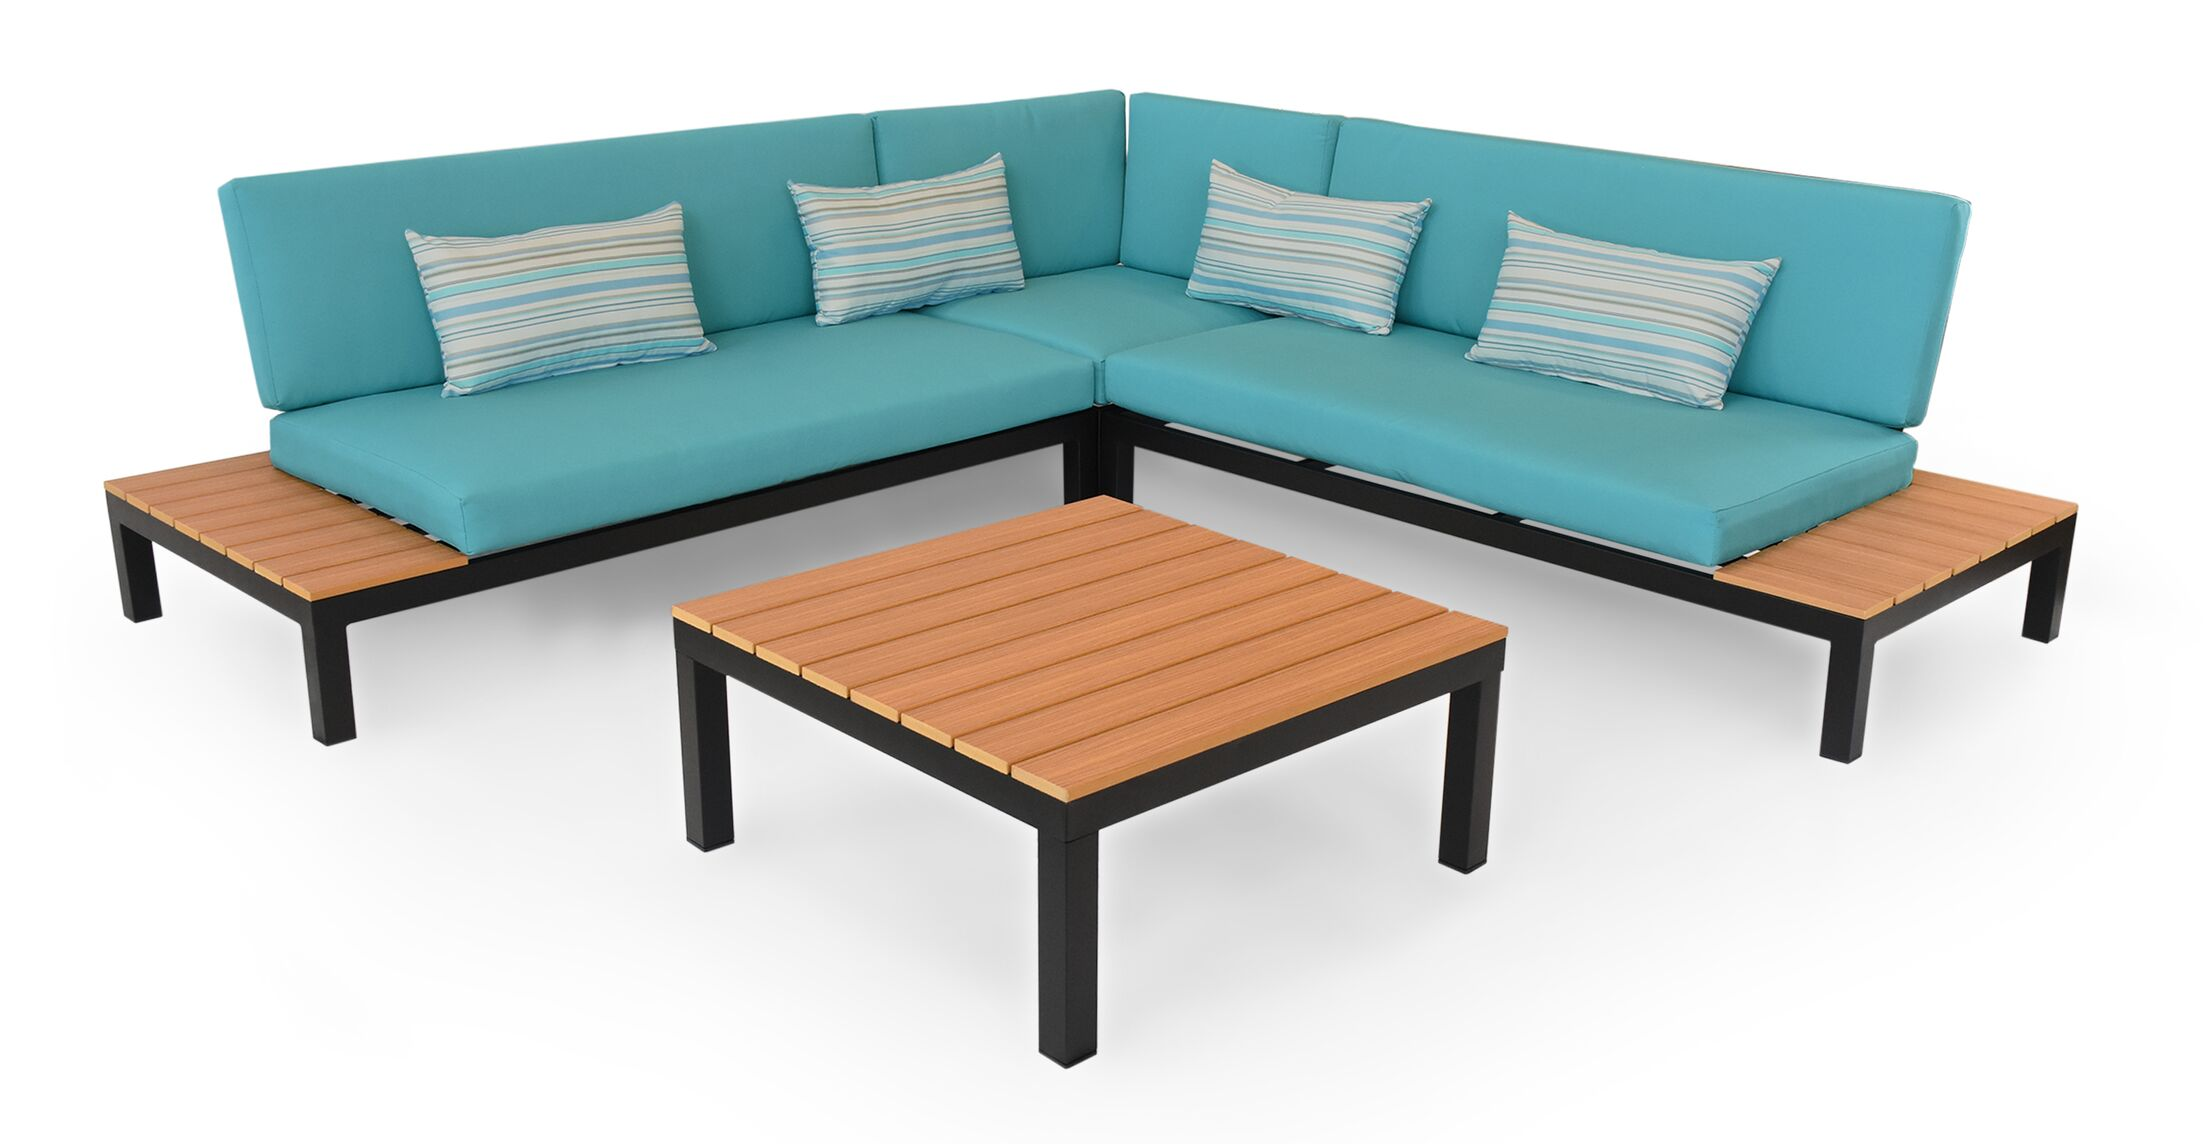 Nelson Outdoor Furniture Modern Patio Sofa with Cushions Finish: Black Metal, Fabric: Turquoise